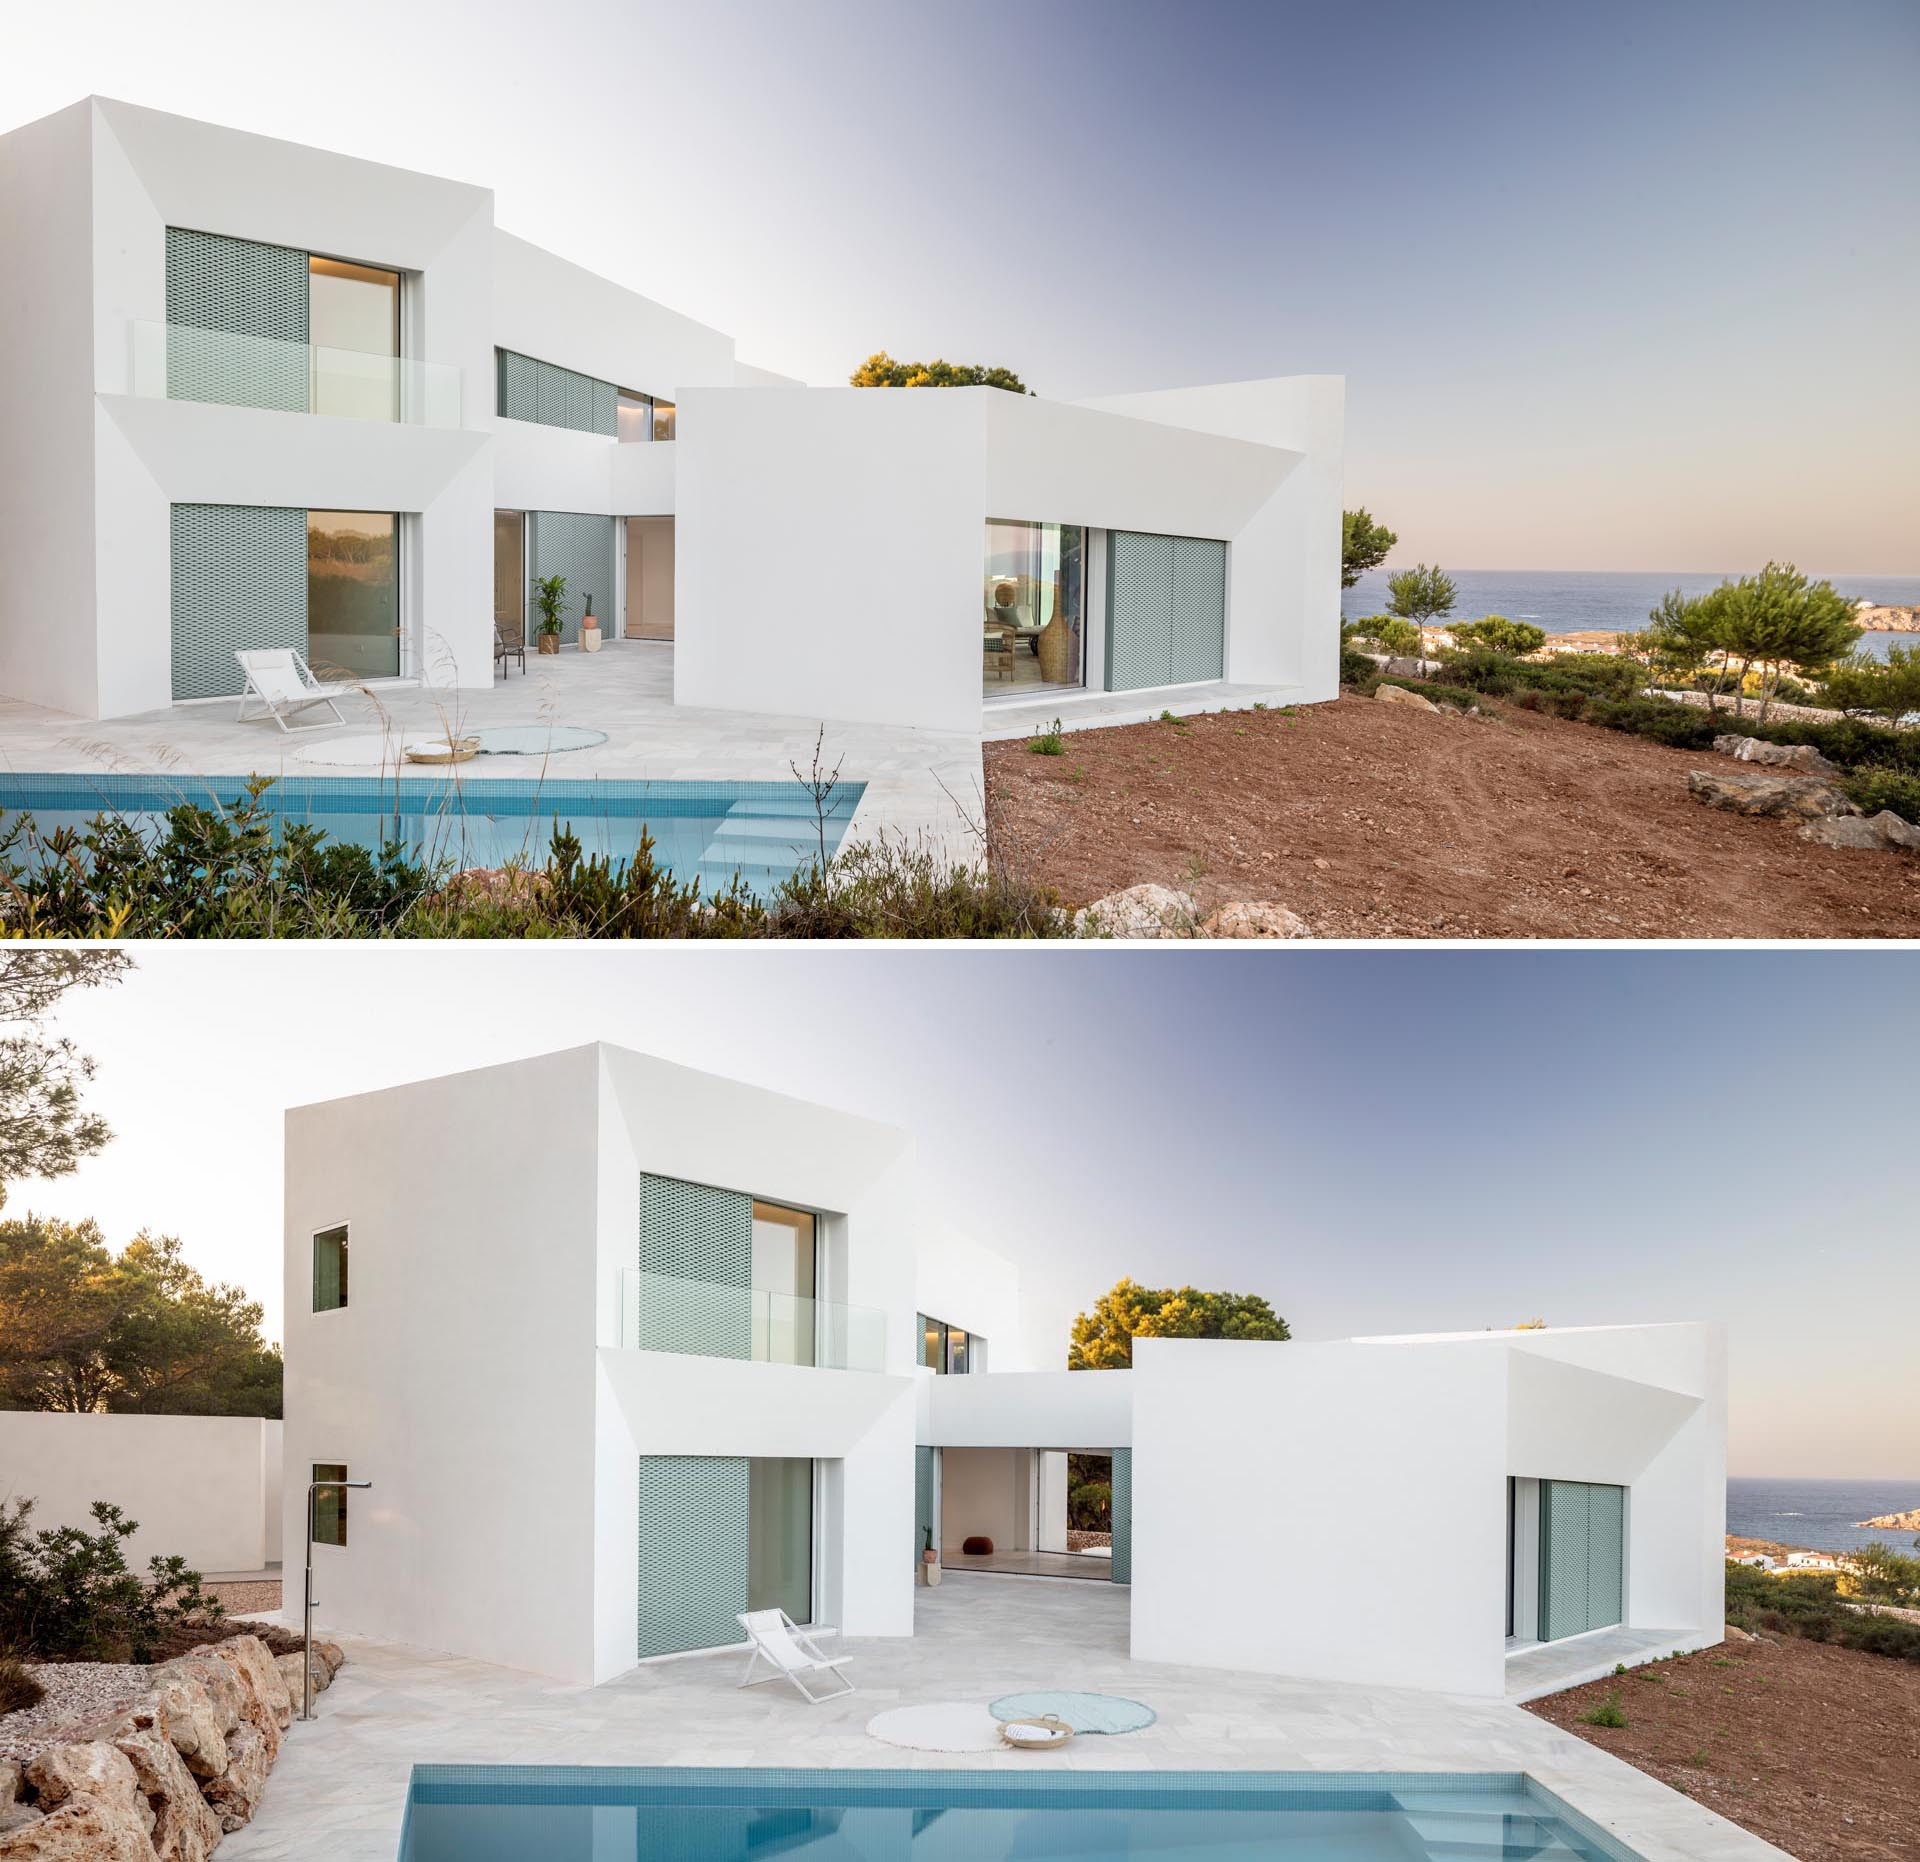 A modern white home on an island with pastel turquoise perforated aluminum screens.